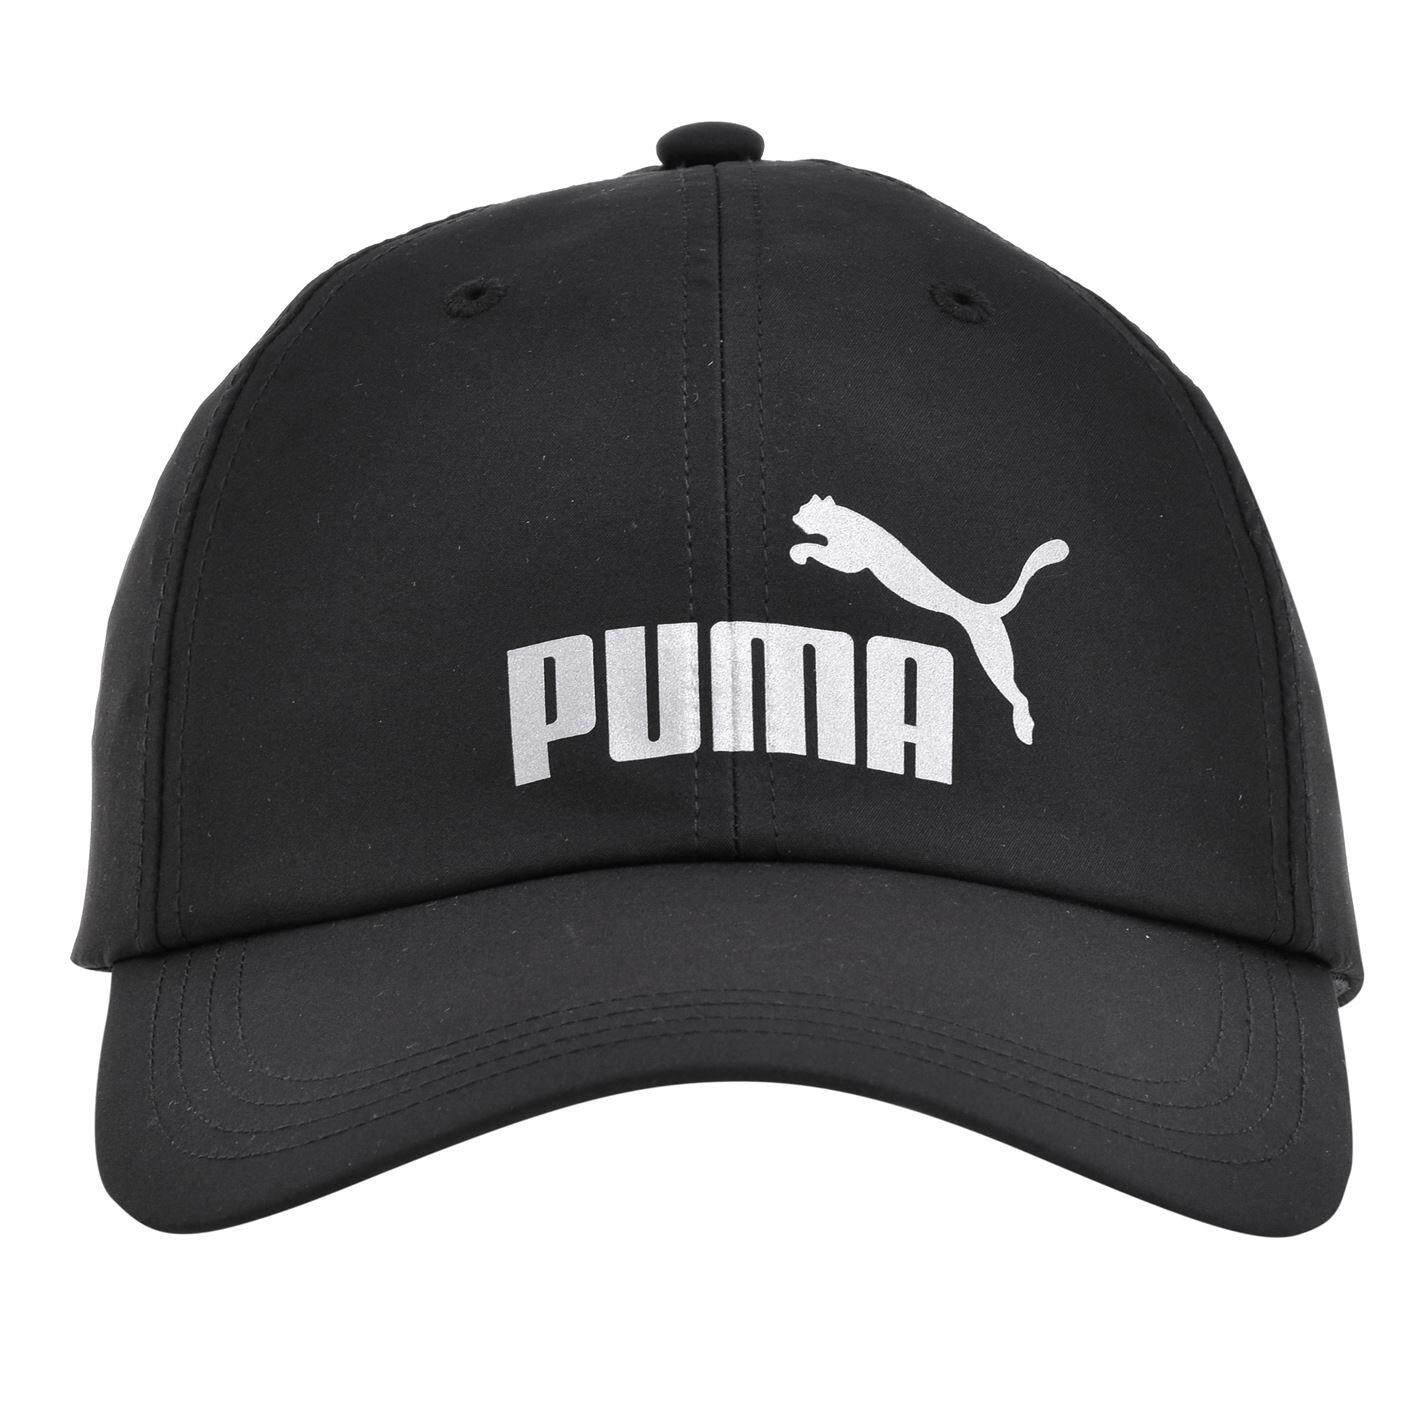 Puma Products With Best Online Price At Lazada Malaysia f50042243ea45